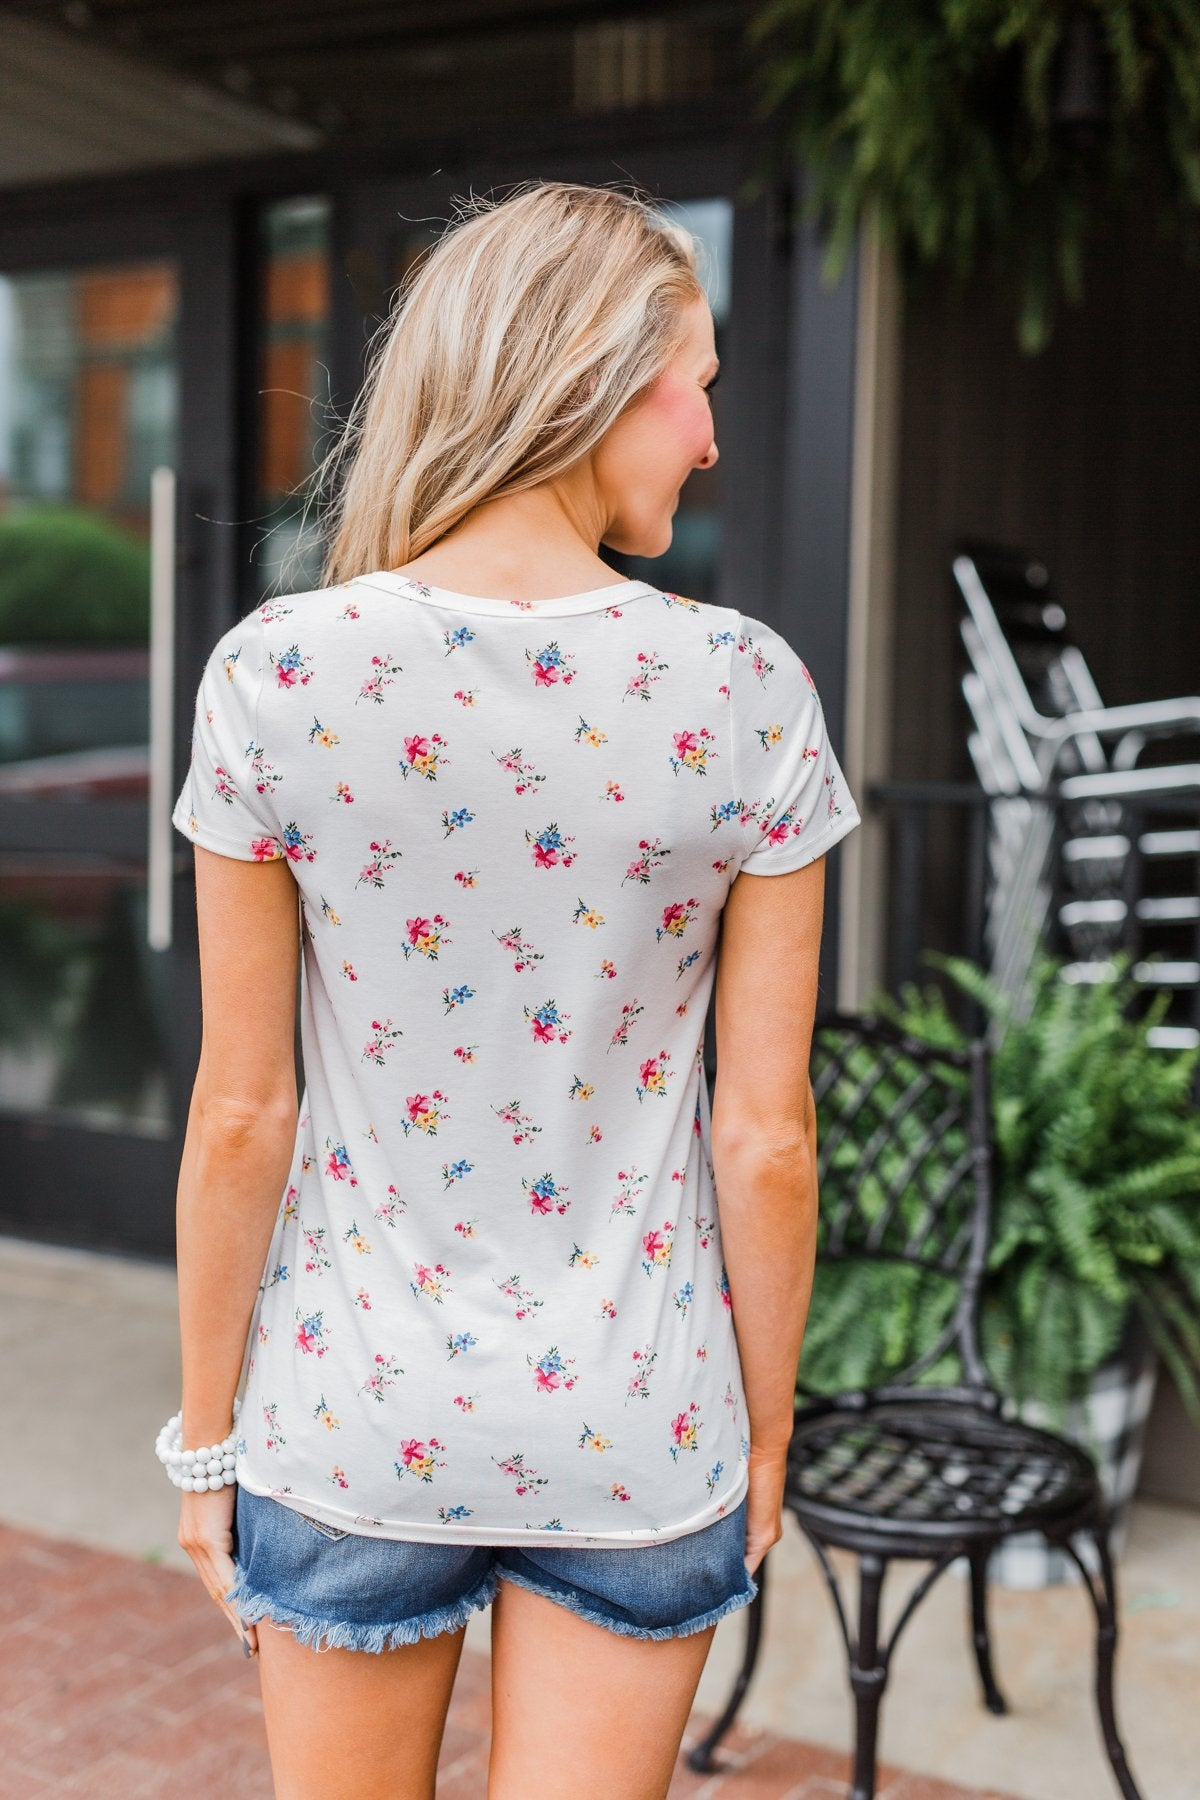 Meet Me in the Garden Floral Criss Cross Top- White